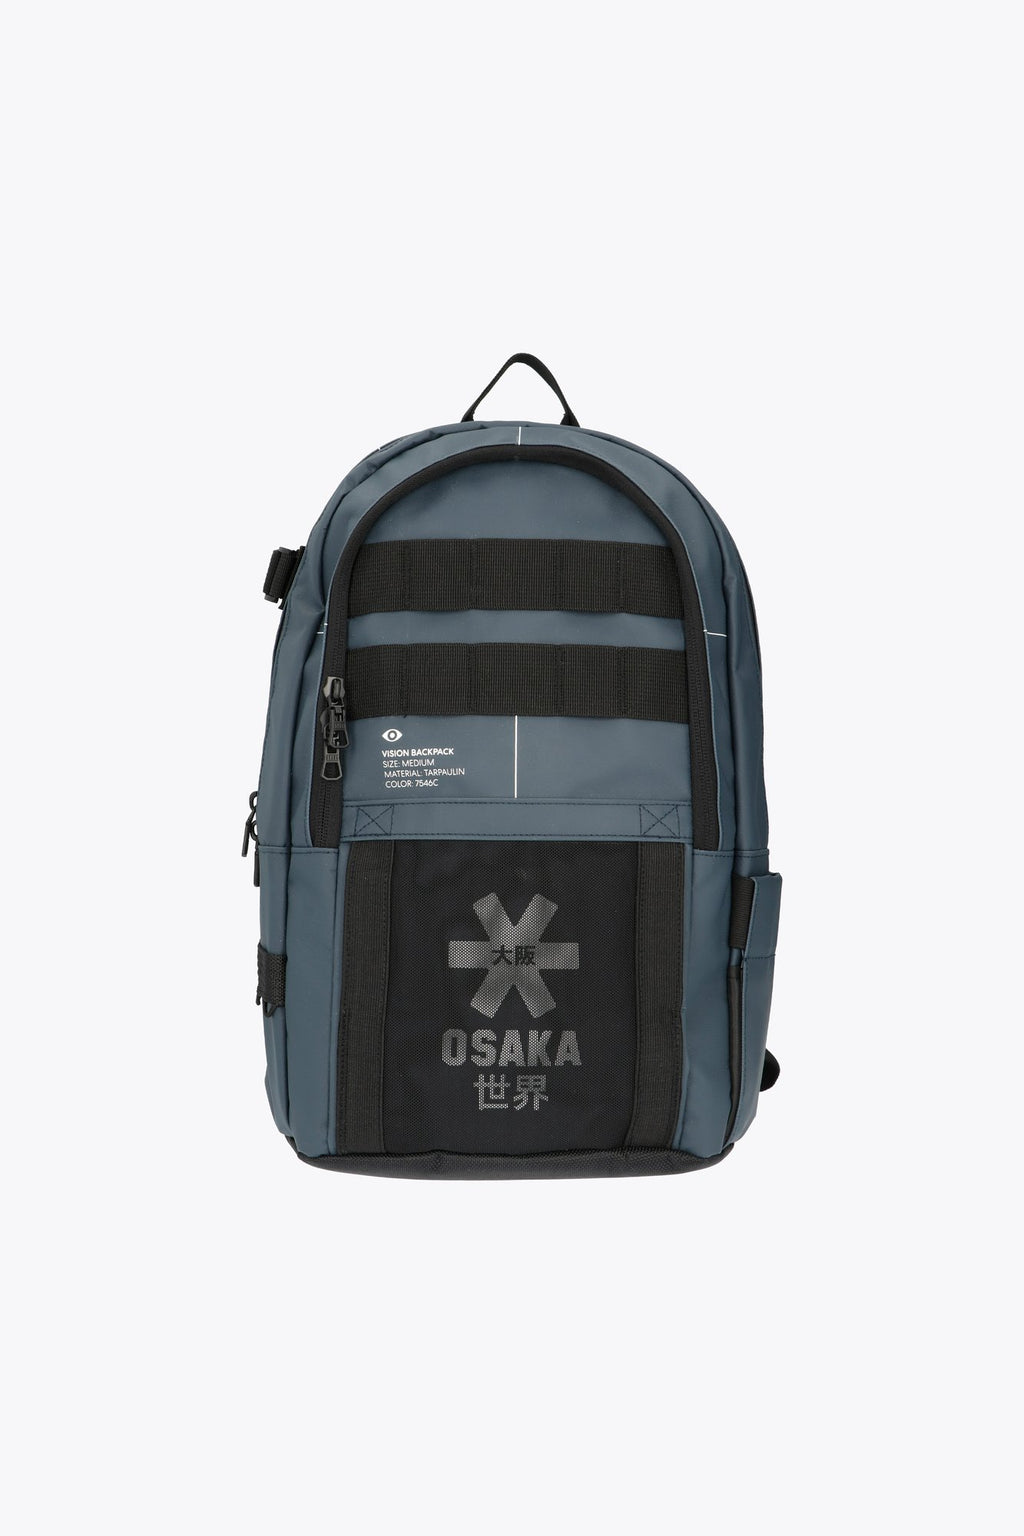 Pro Tour Backpack Medium - French Navy